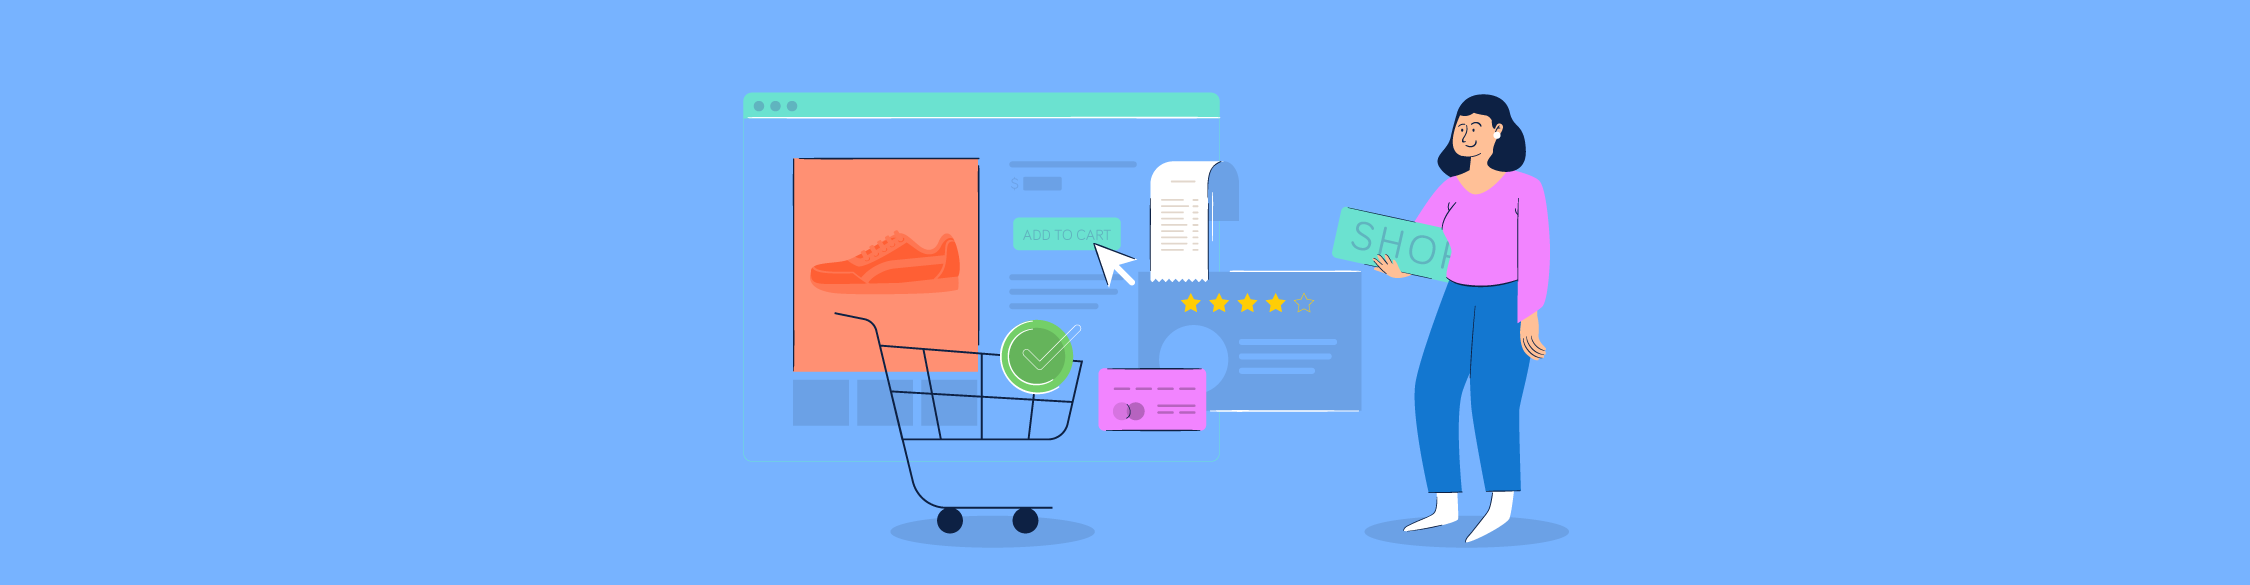 How to Design a Successful Ecommerce Website